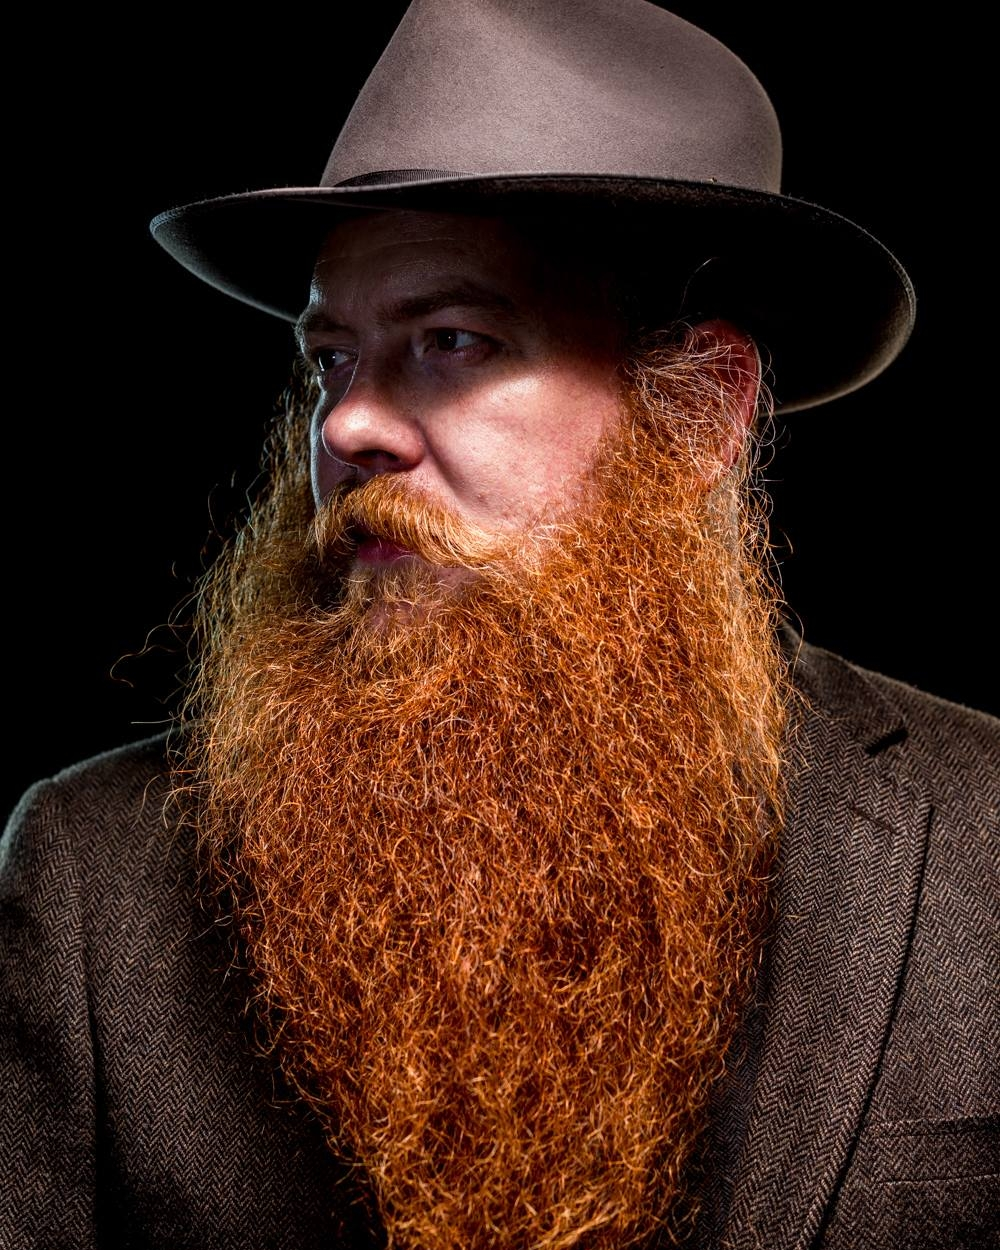 photo by: Jeffery Moustache  The World of Beards